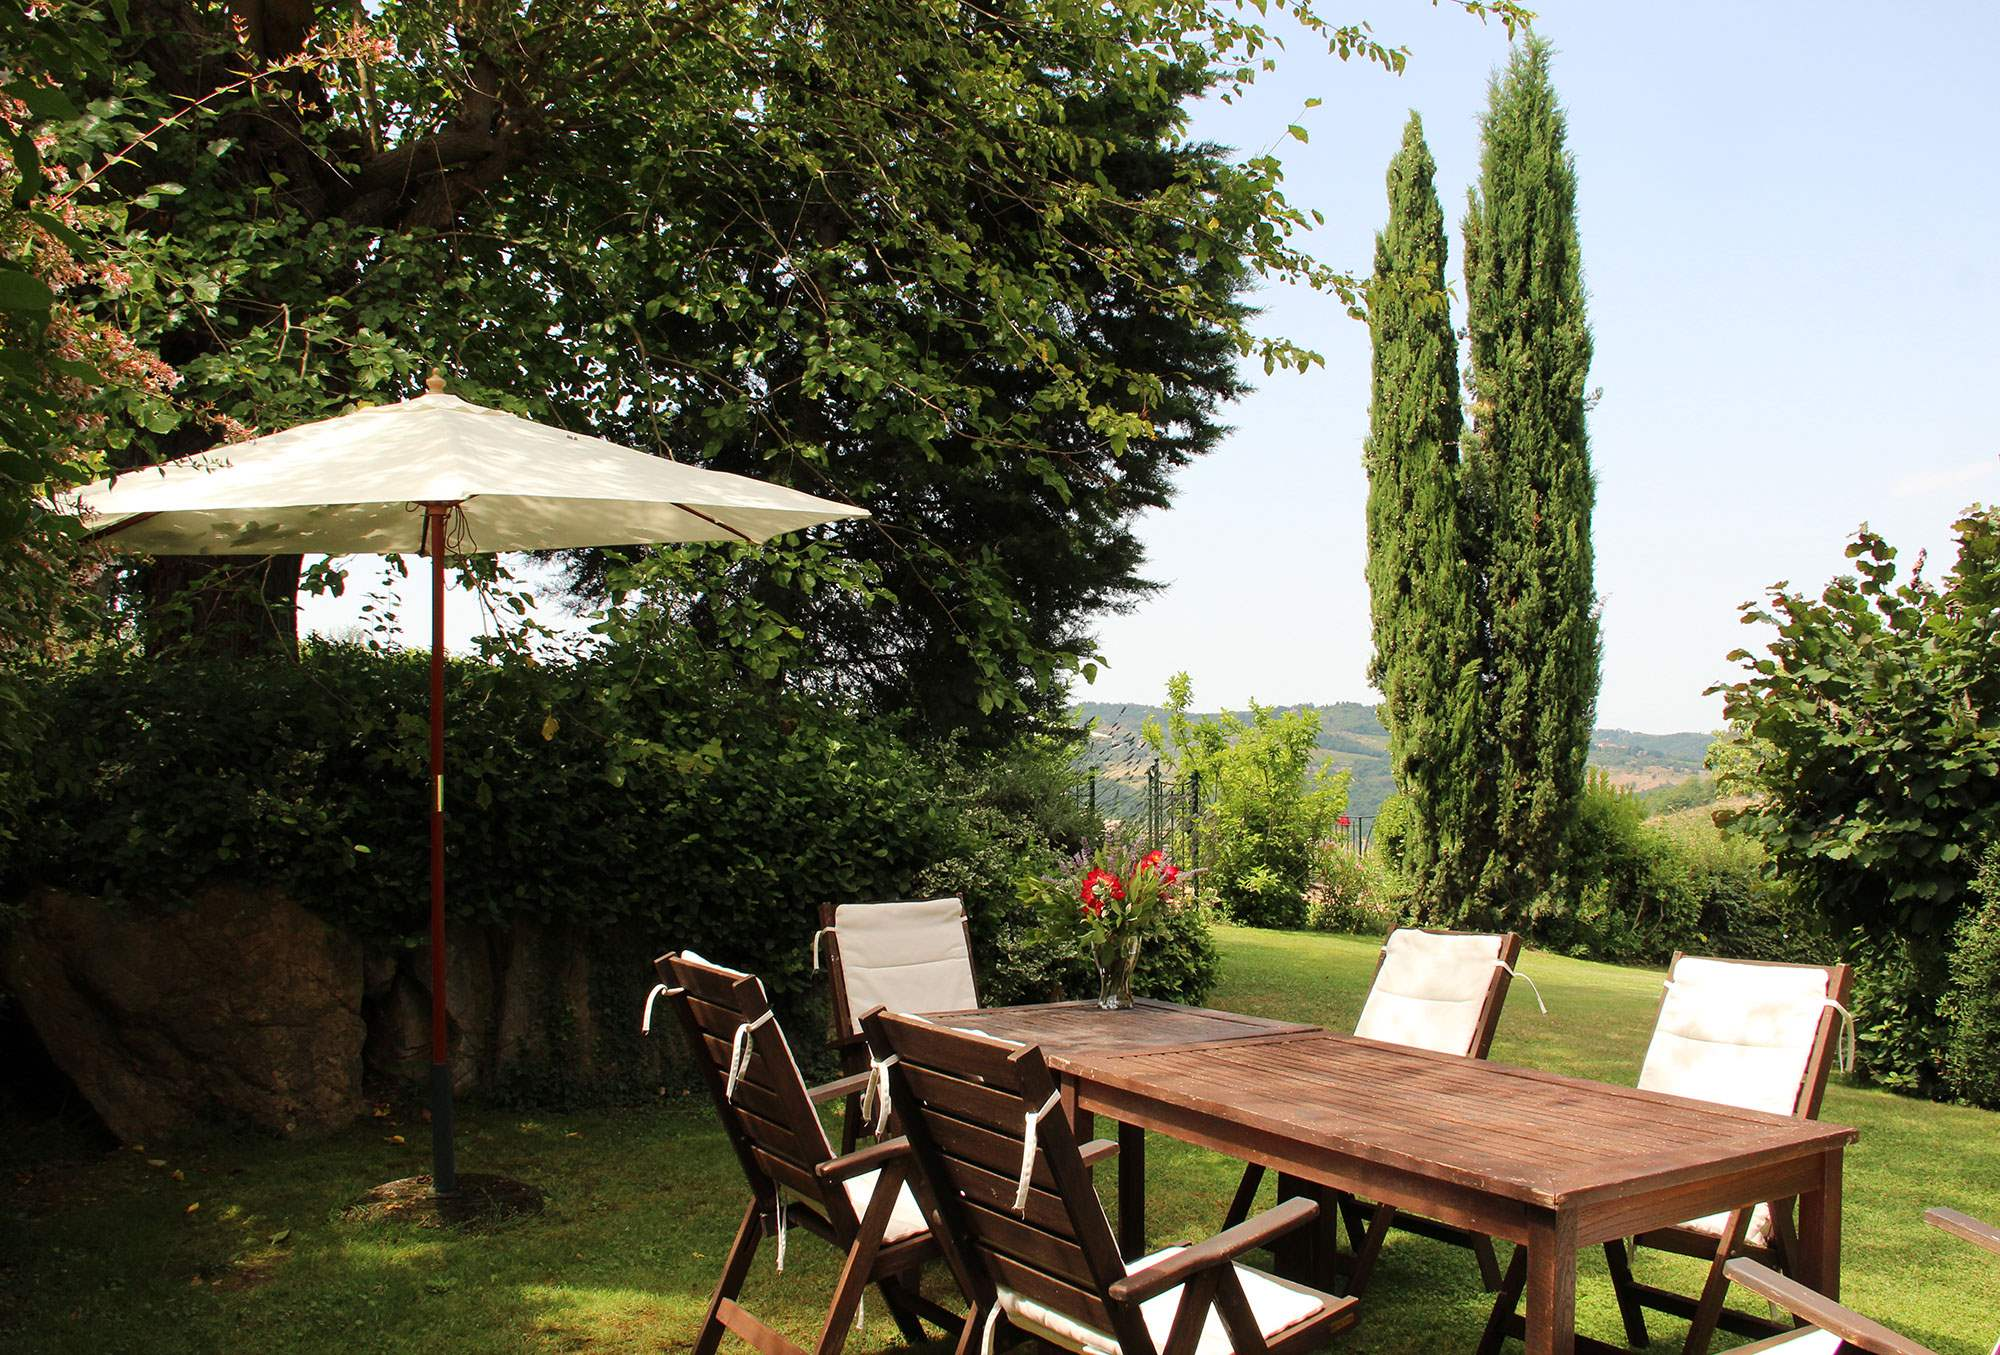 Casa Ferruzzi 2, 3 bedroom apartment in Chianti & Countryside, Tuscany Photo #11